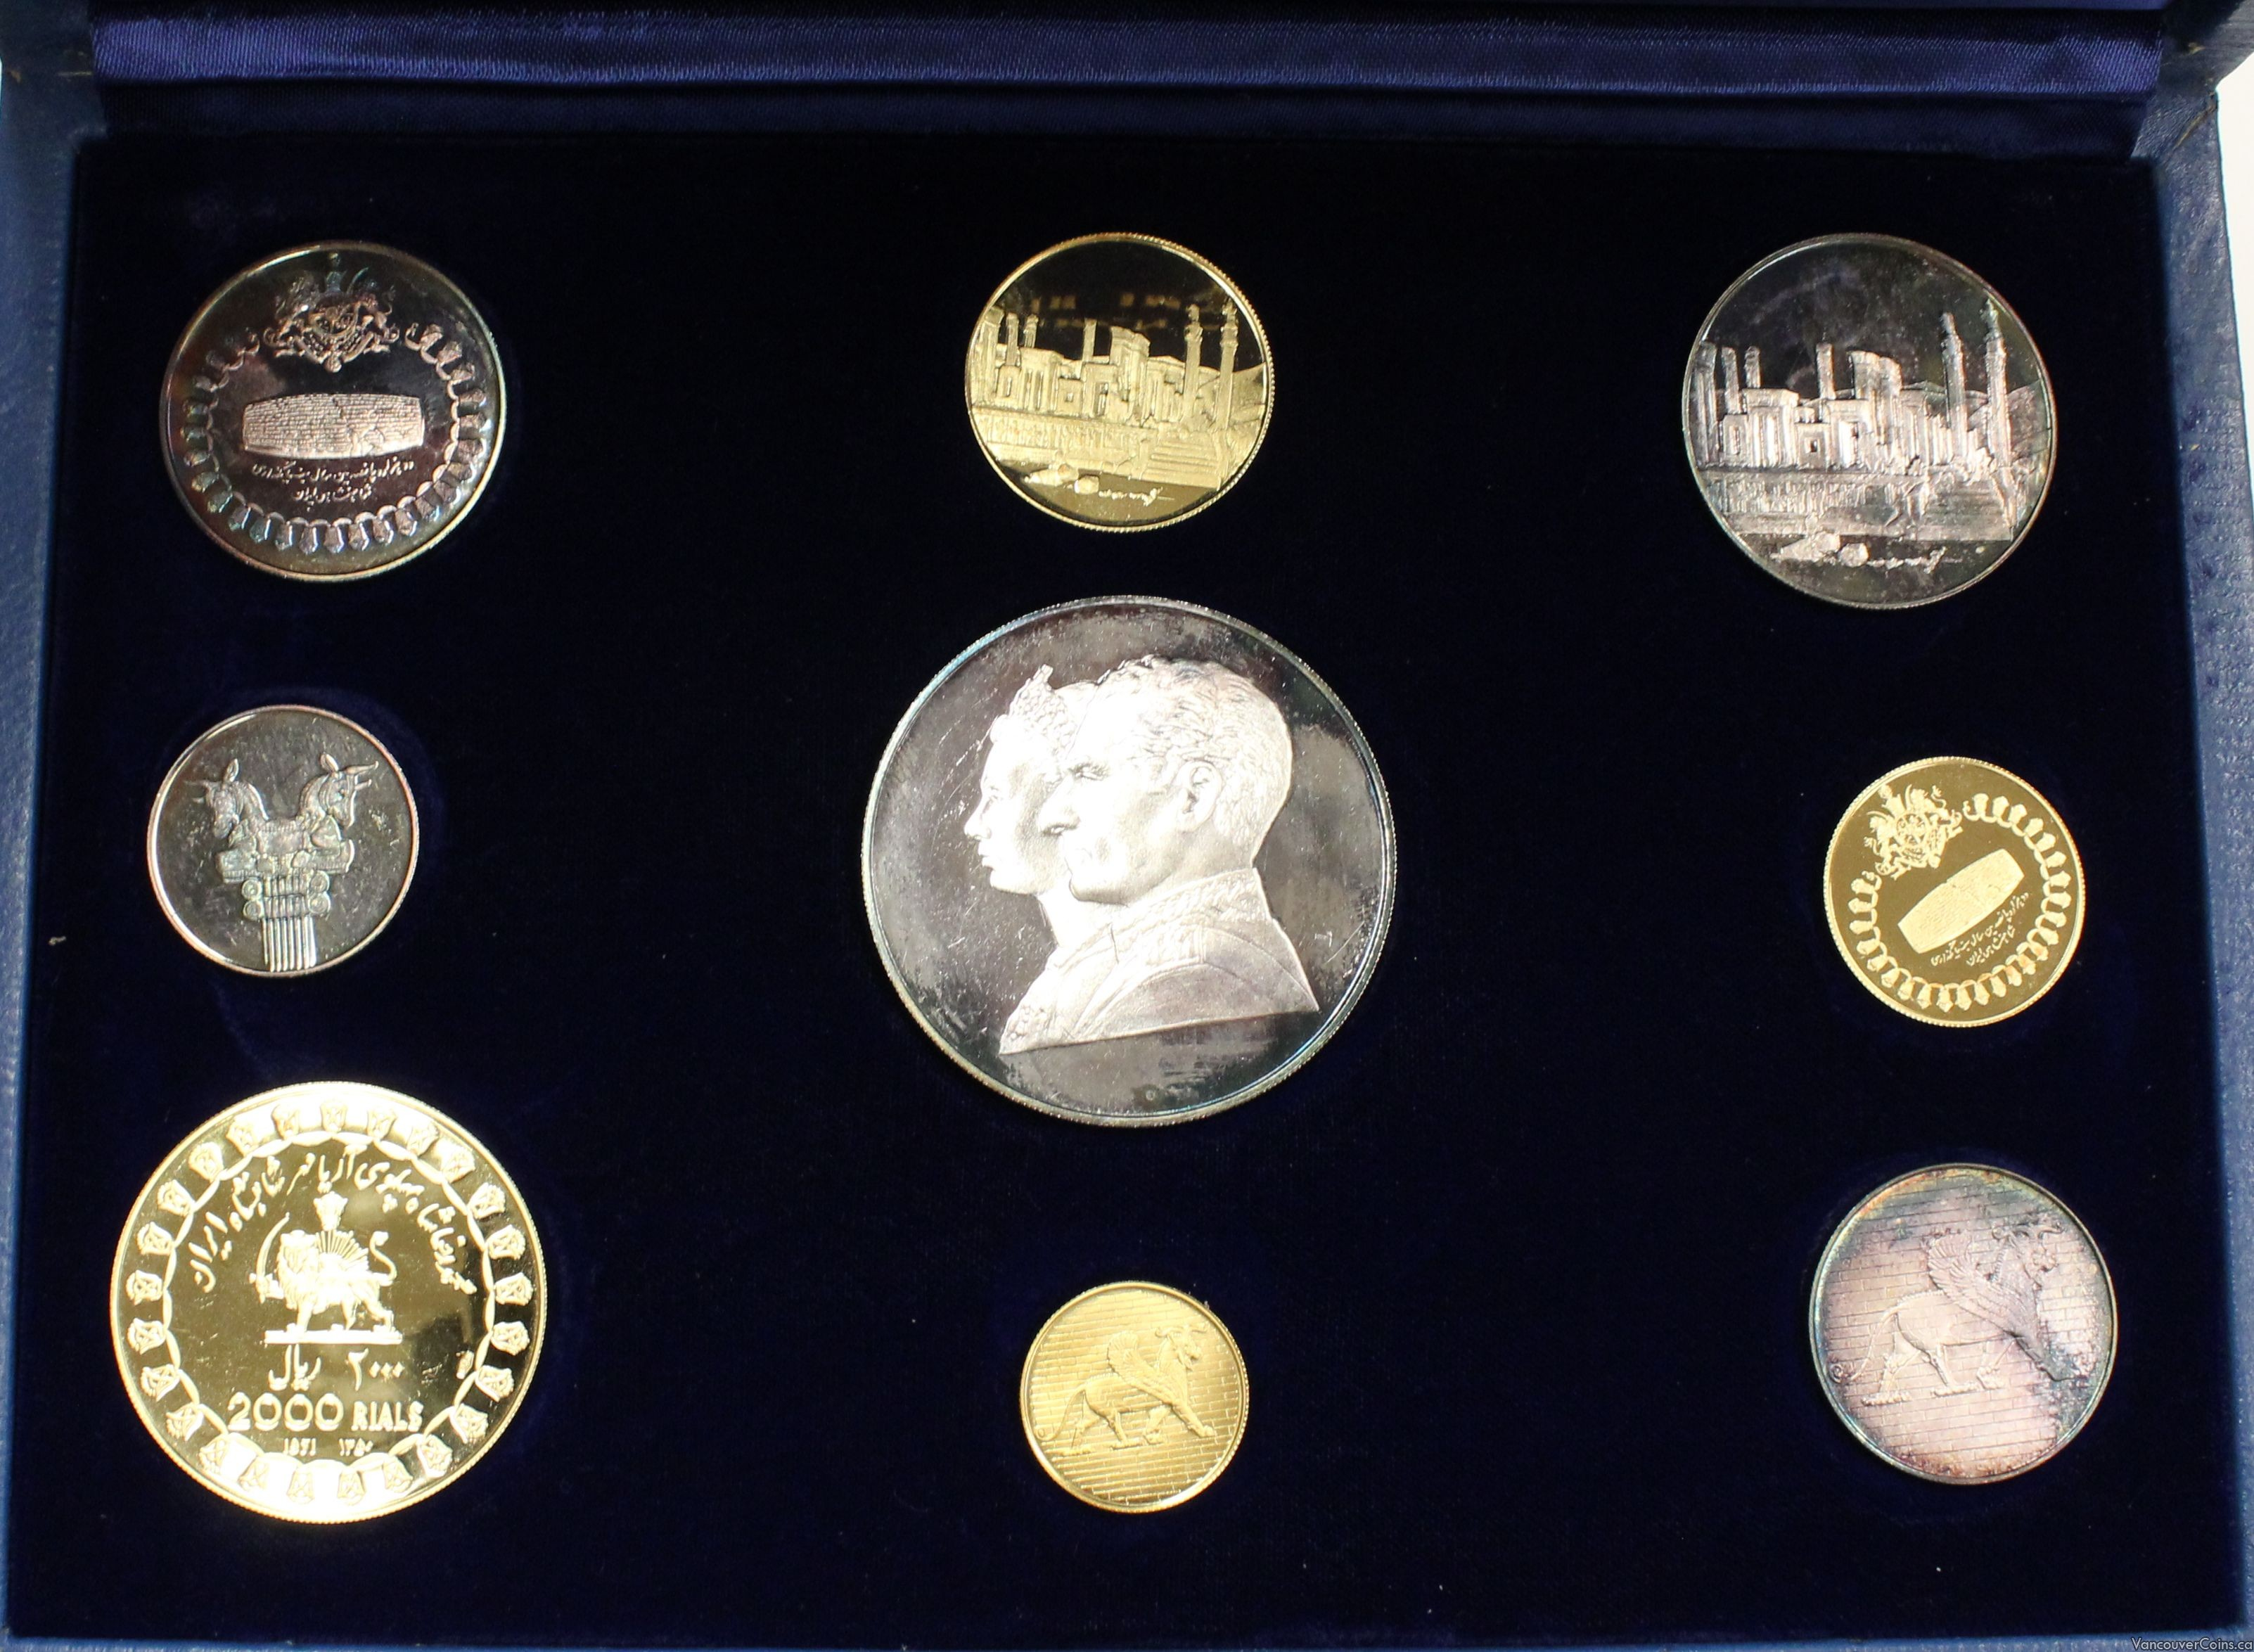 1971 Empire of Iran Gold & Silver 9-coin proof set